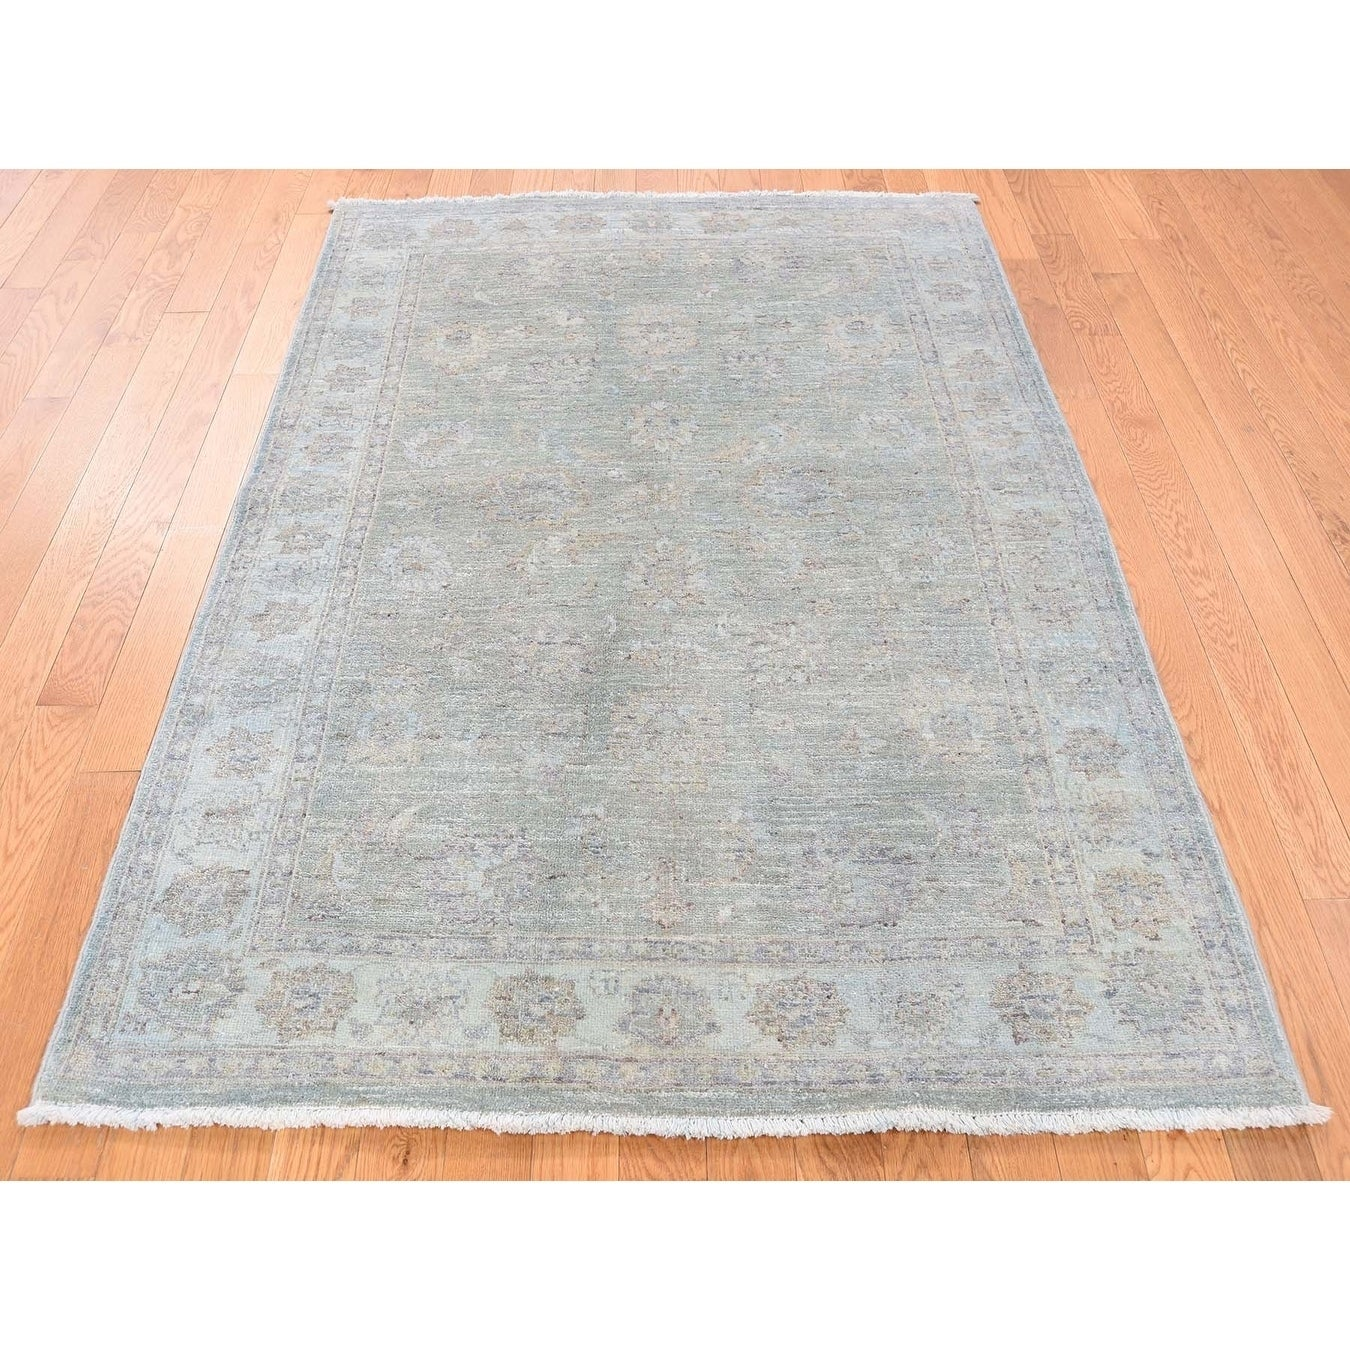 Hand Knotted Green Oushak And Peshawar with Wool Oriental Rug - 41 x 510